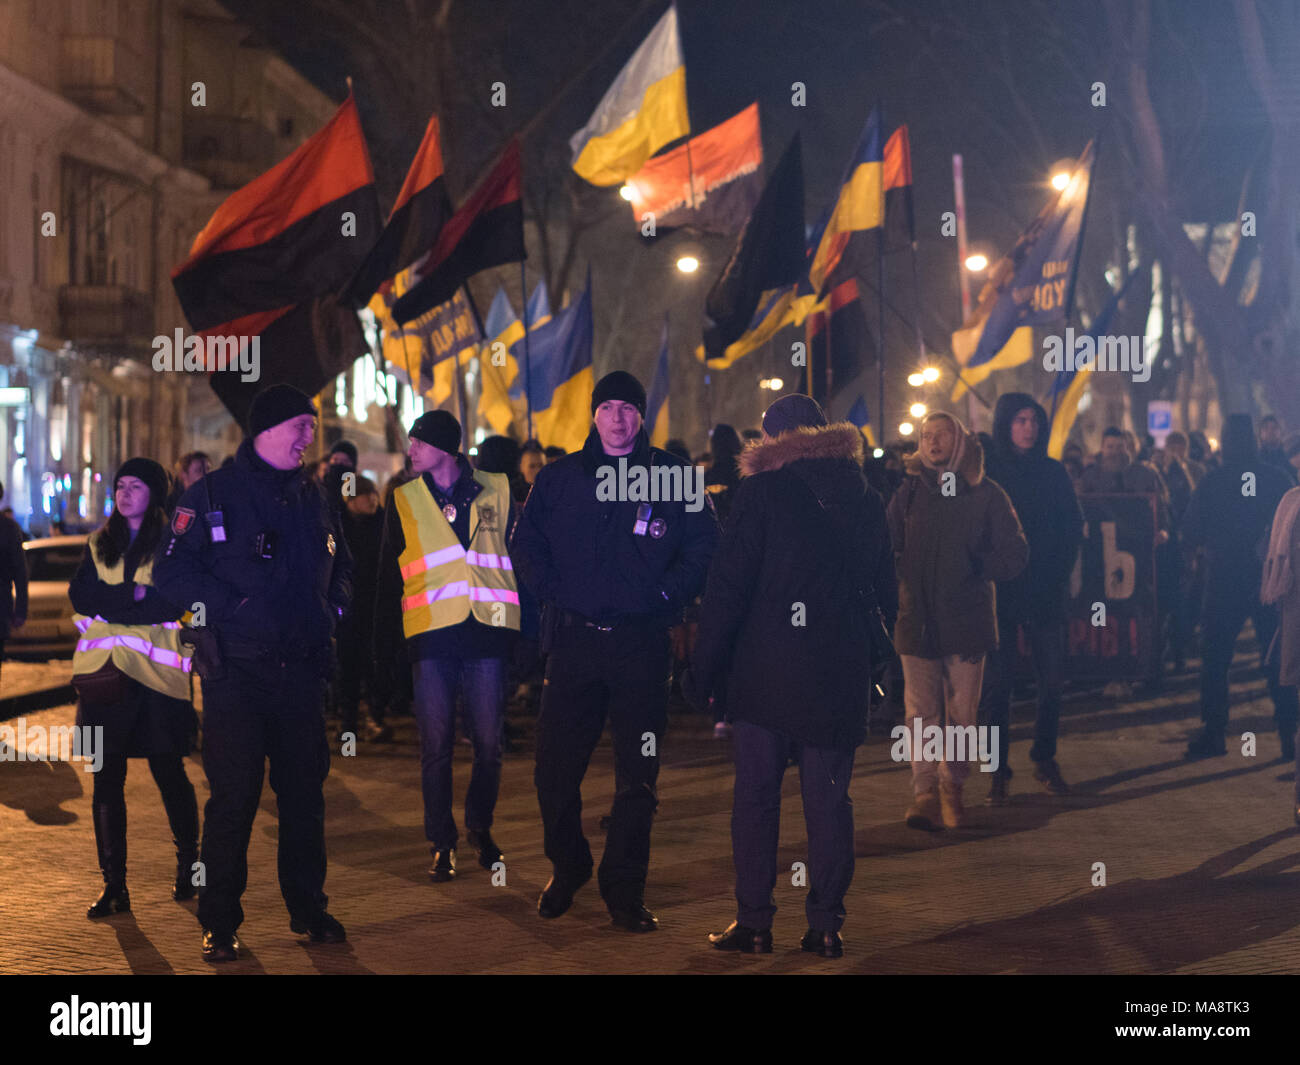 ODESSA, UKRAINE - January 30, 2018: People demonstrating civil peaceful protest during a state of armed revolution Ukraine. Movement of column of demonstrators at rally on the streets - Stock Image